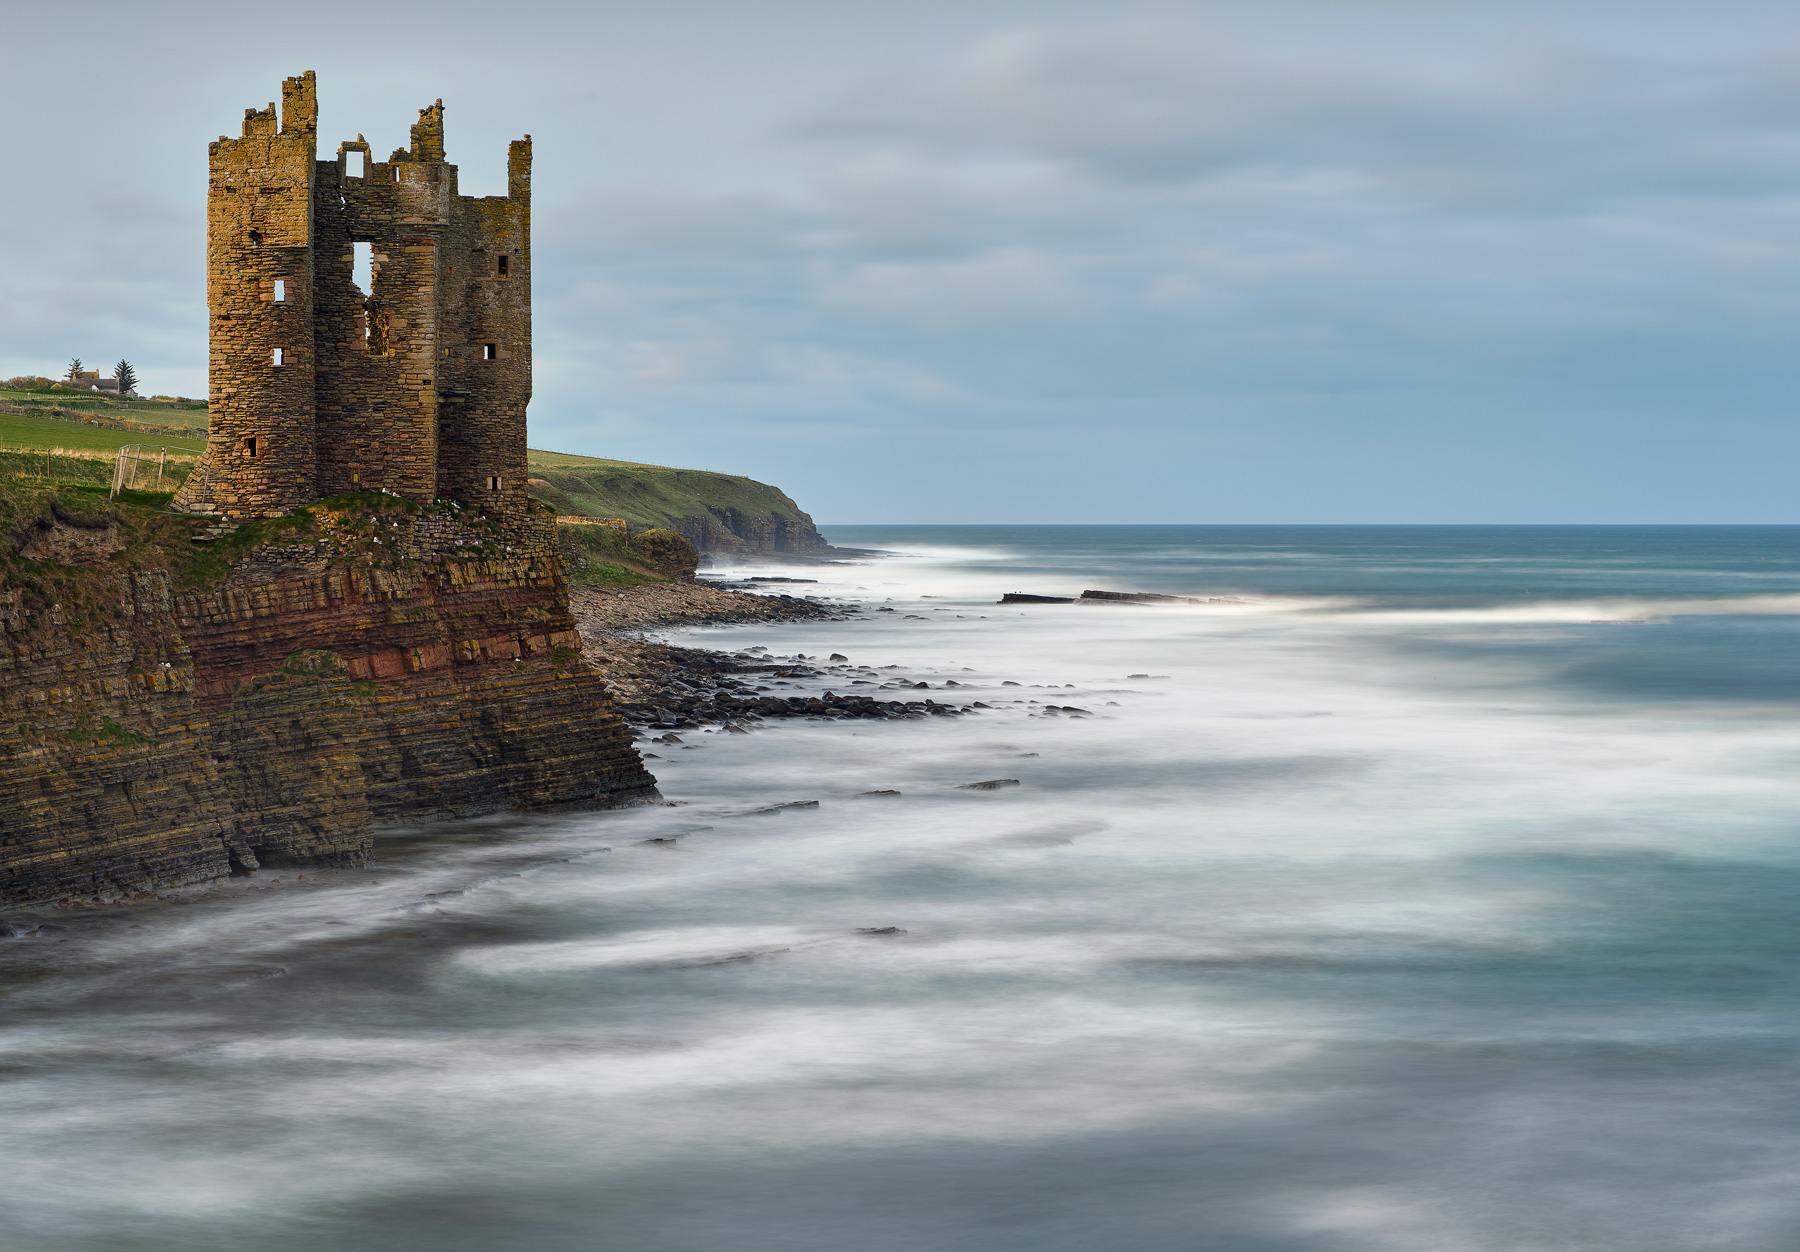 Sunlit Keiss castle flickers gold in the end of day light perched high on a cliff directly overlooking a boisterous sea at high tide.